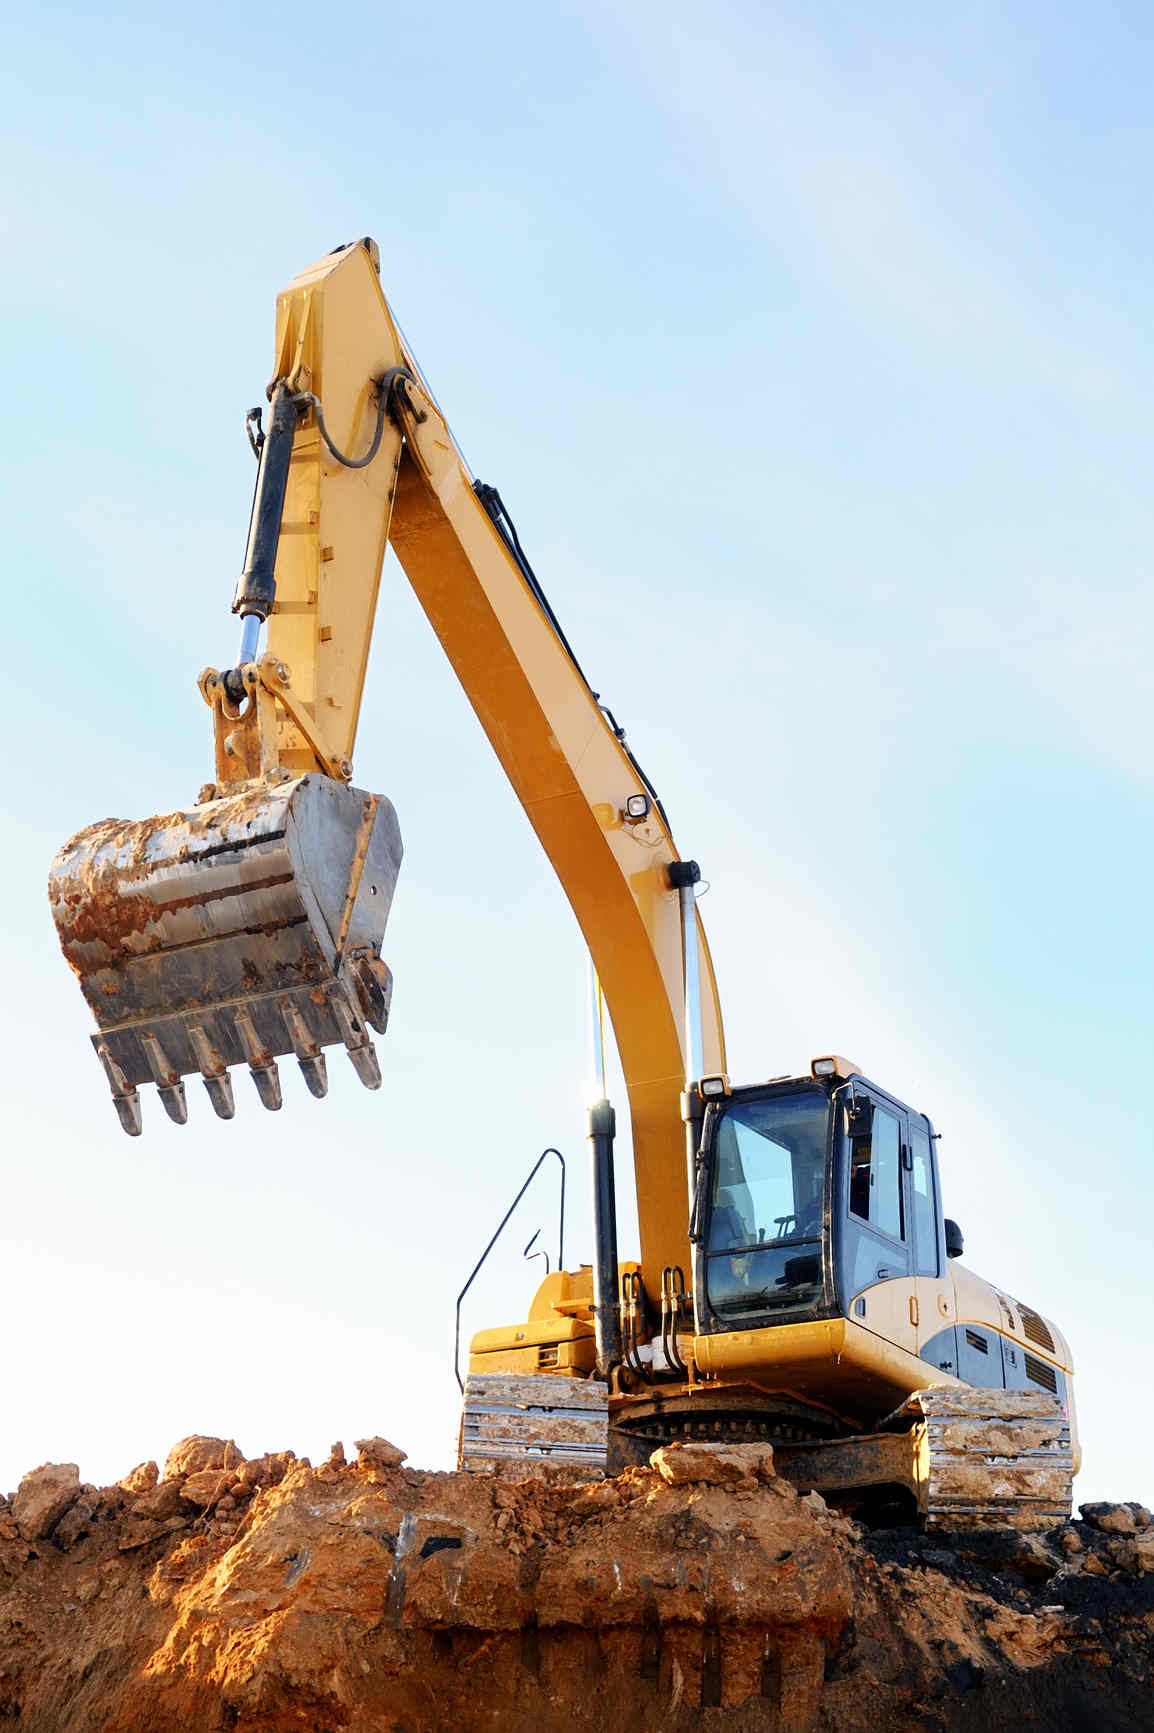 Image of an excavator on top of a dirt mound